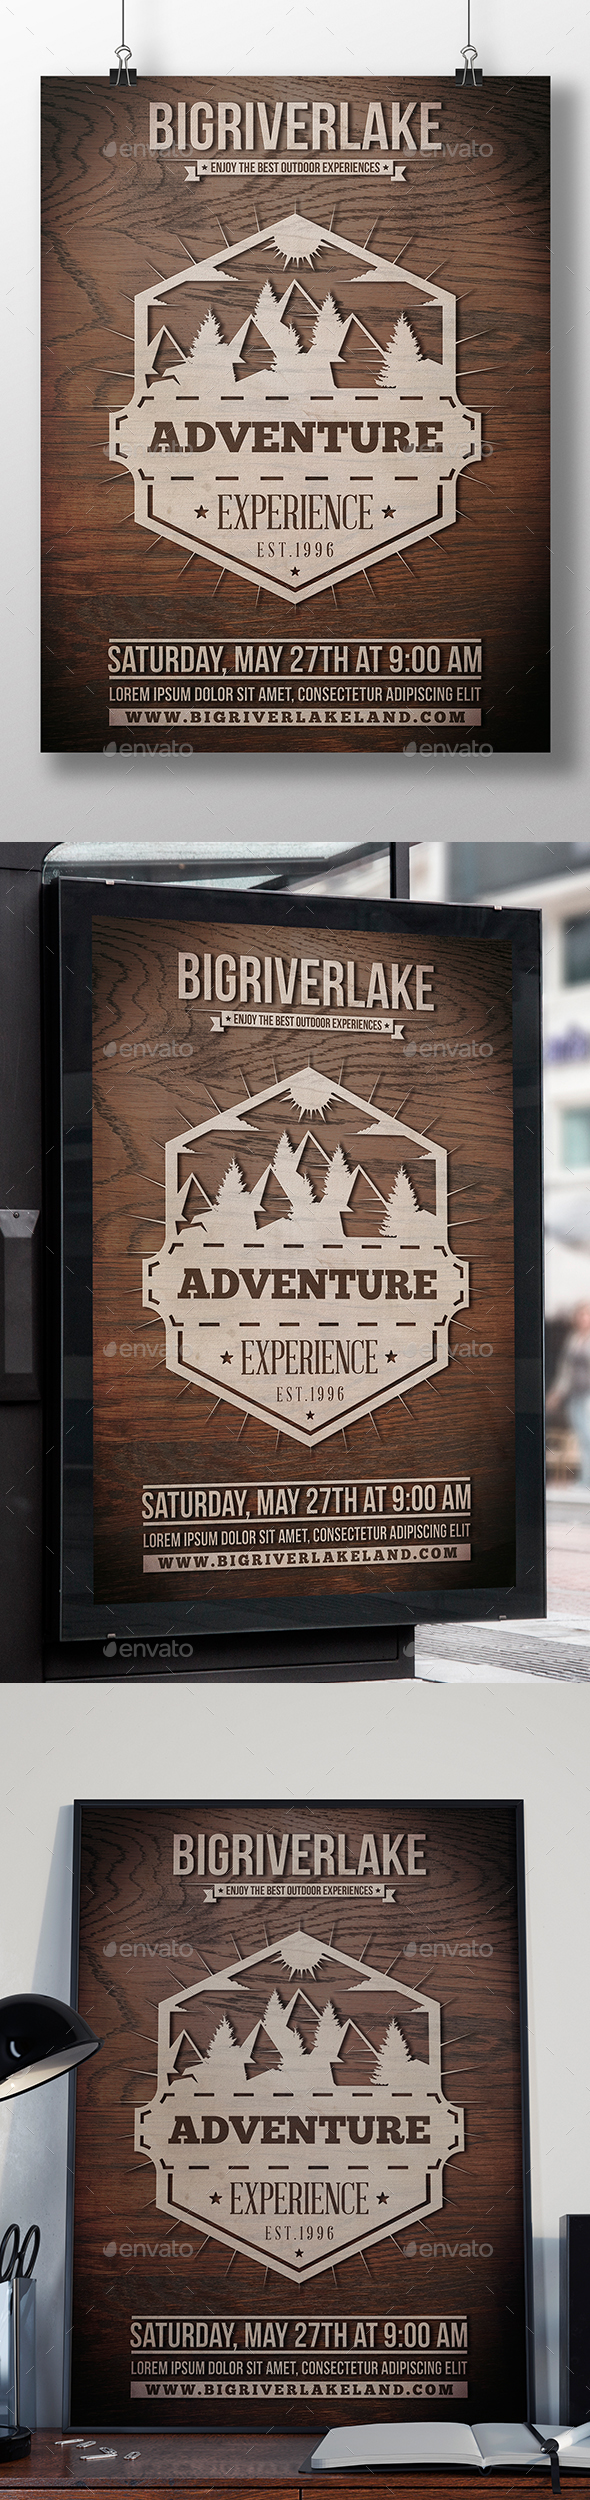 Big River Lake Flyer Template - Miscellaneous Events